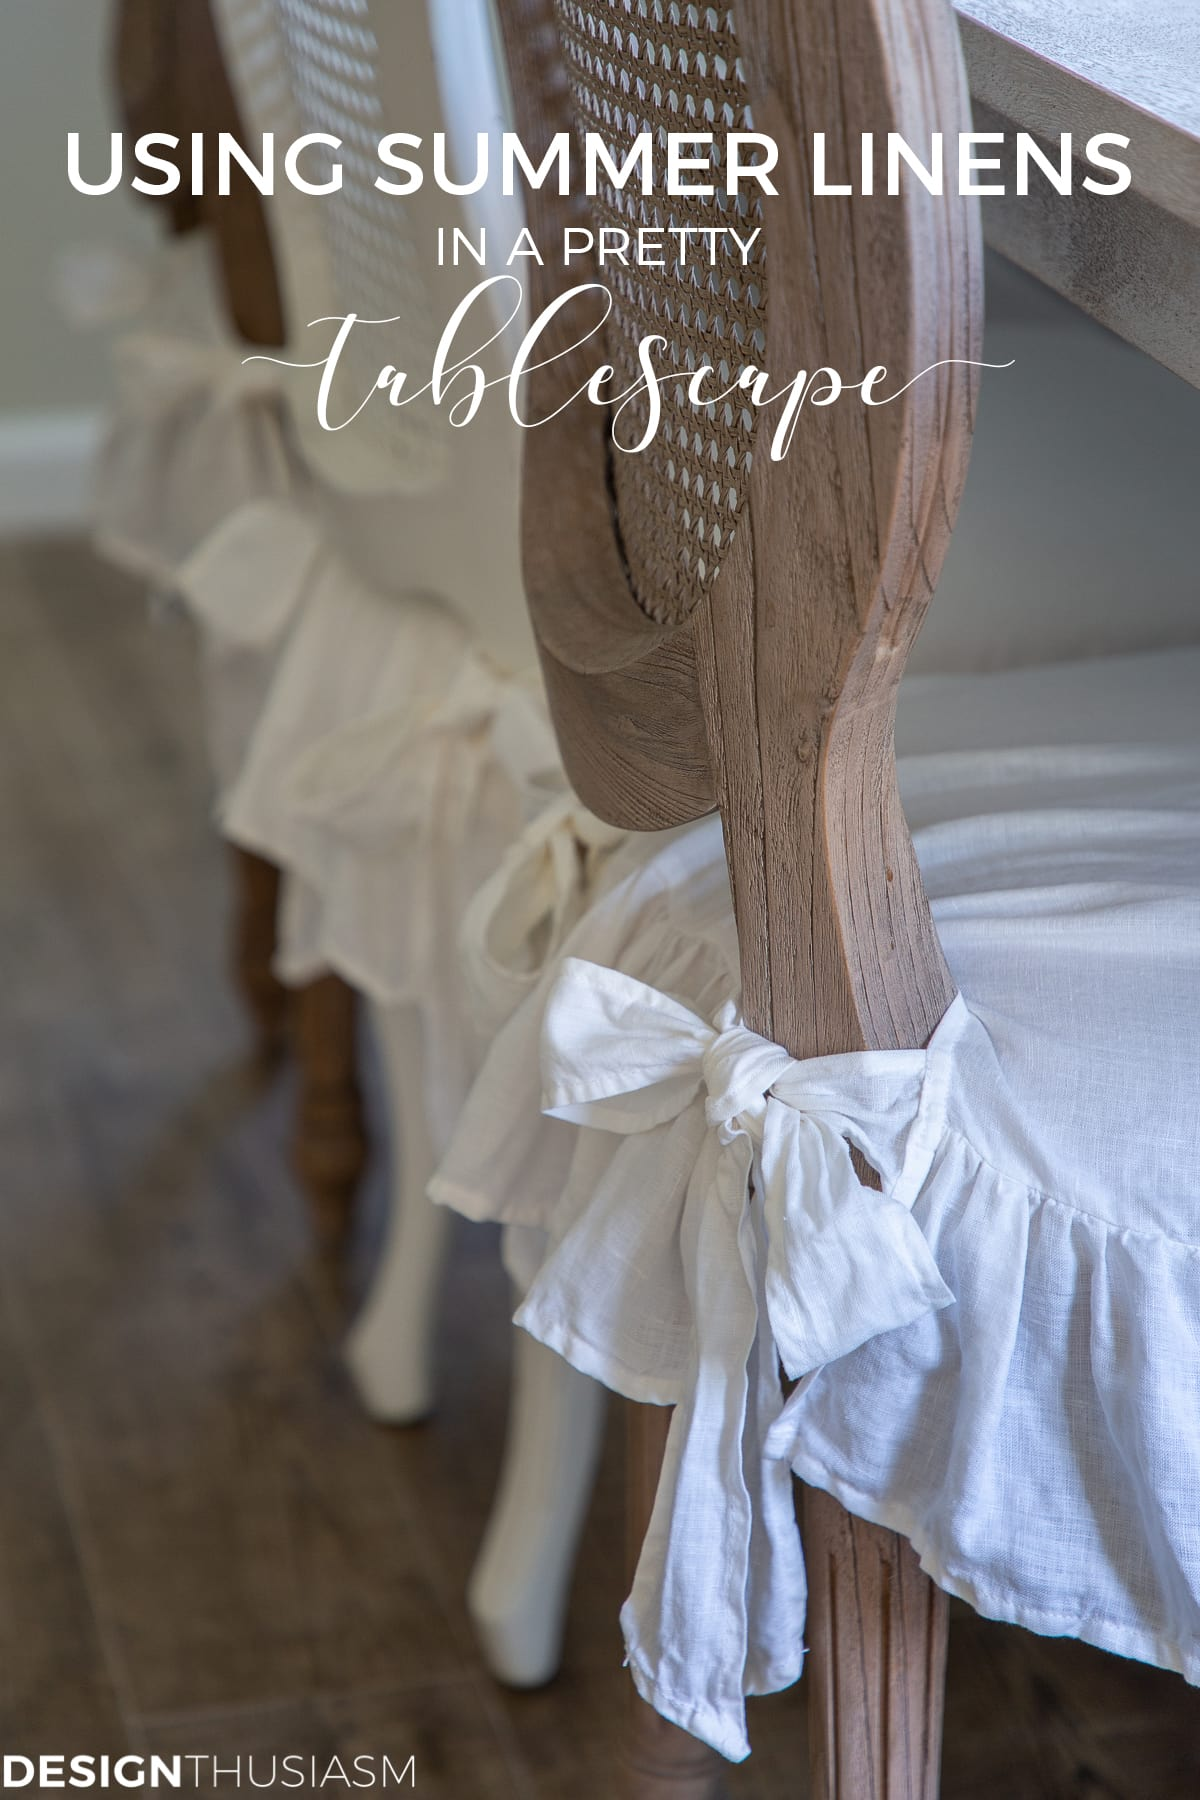 linen chair covers in a pretty summer tablescape